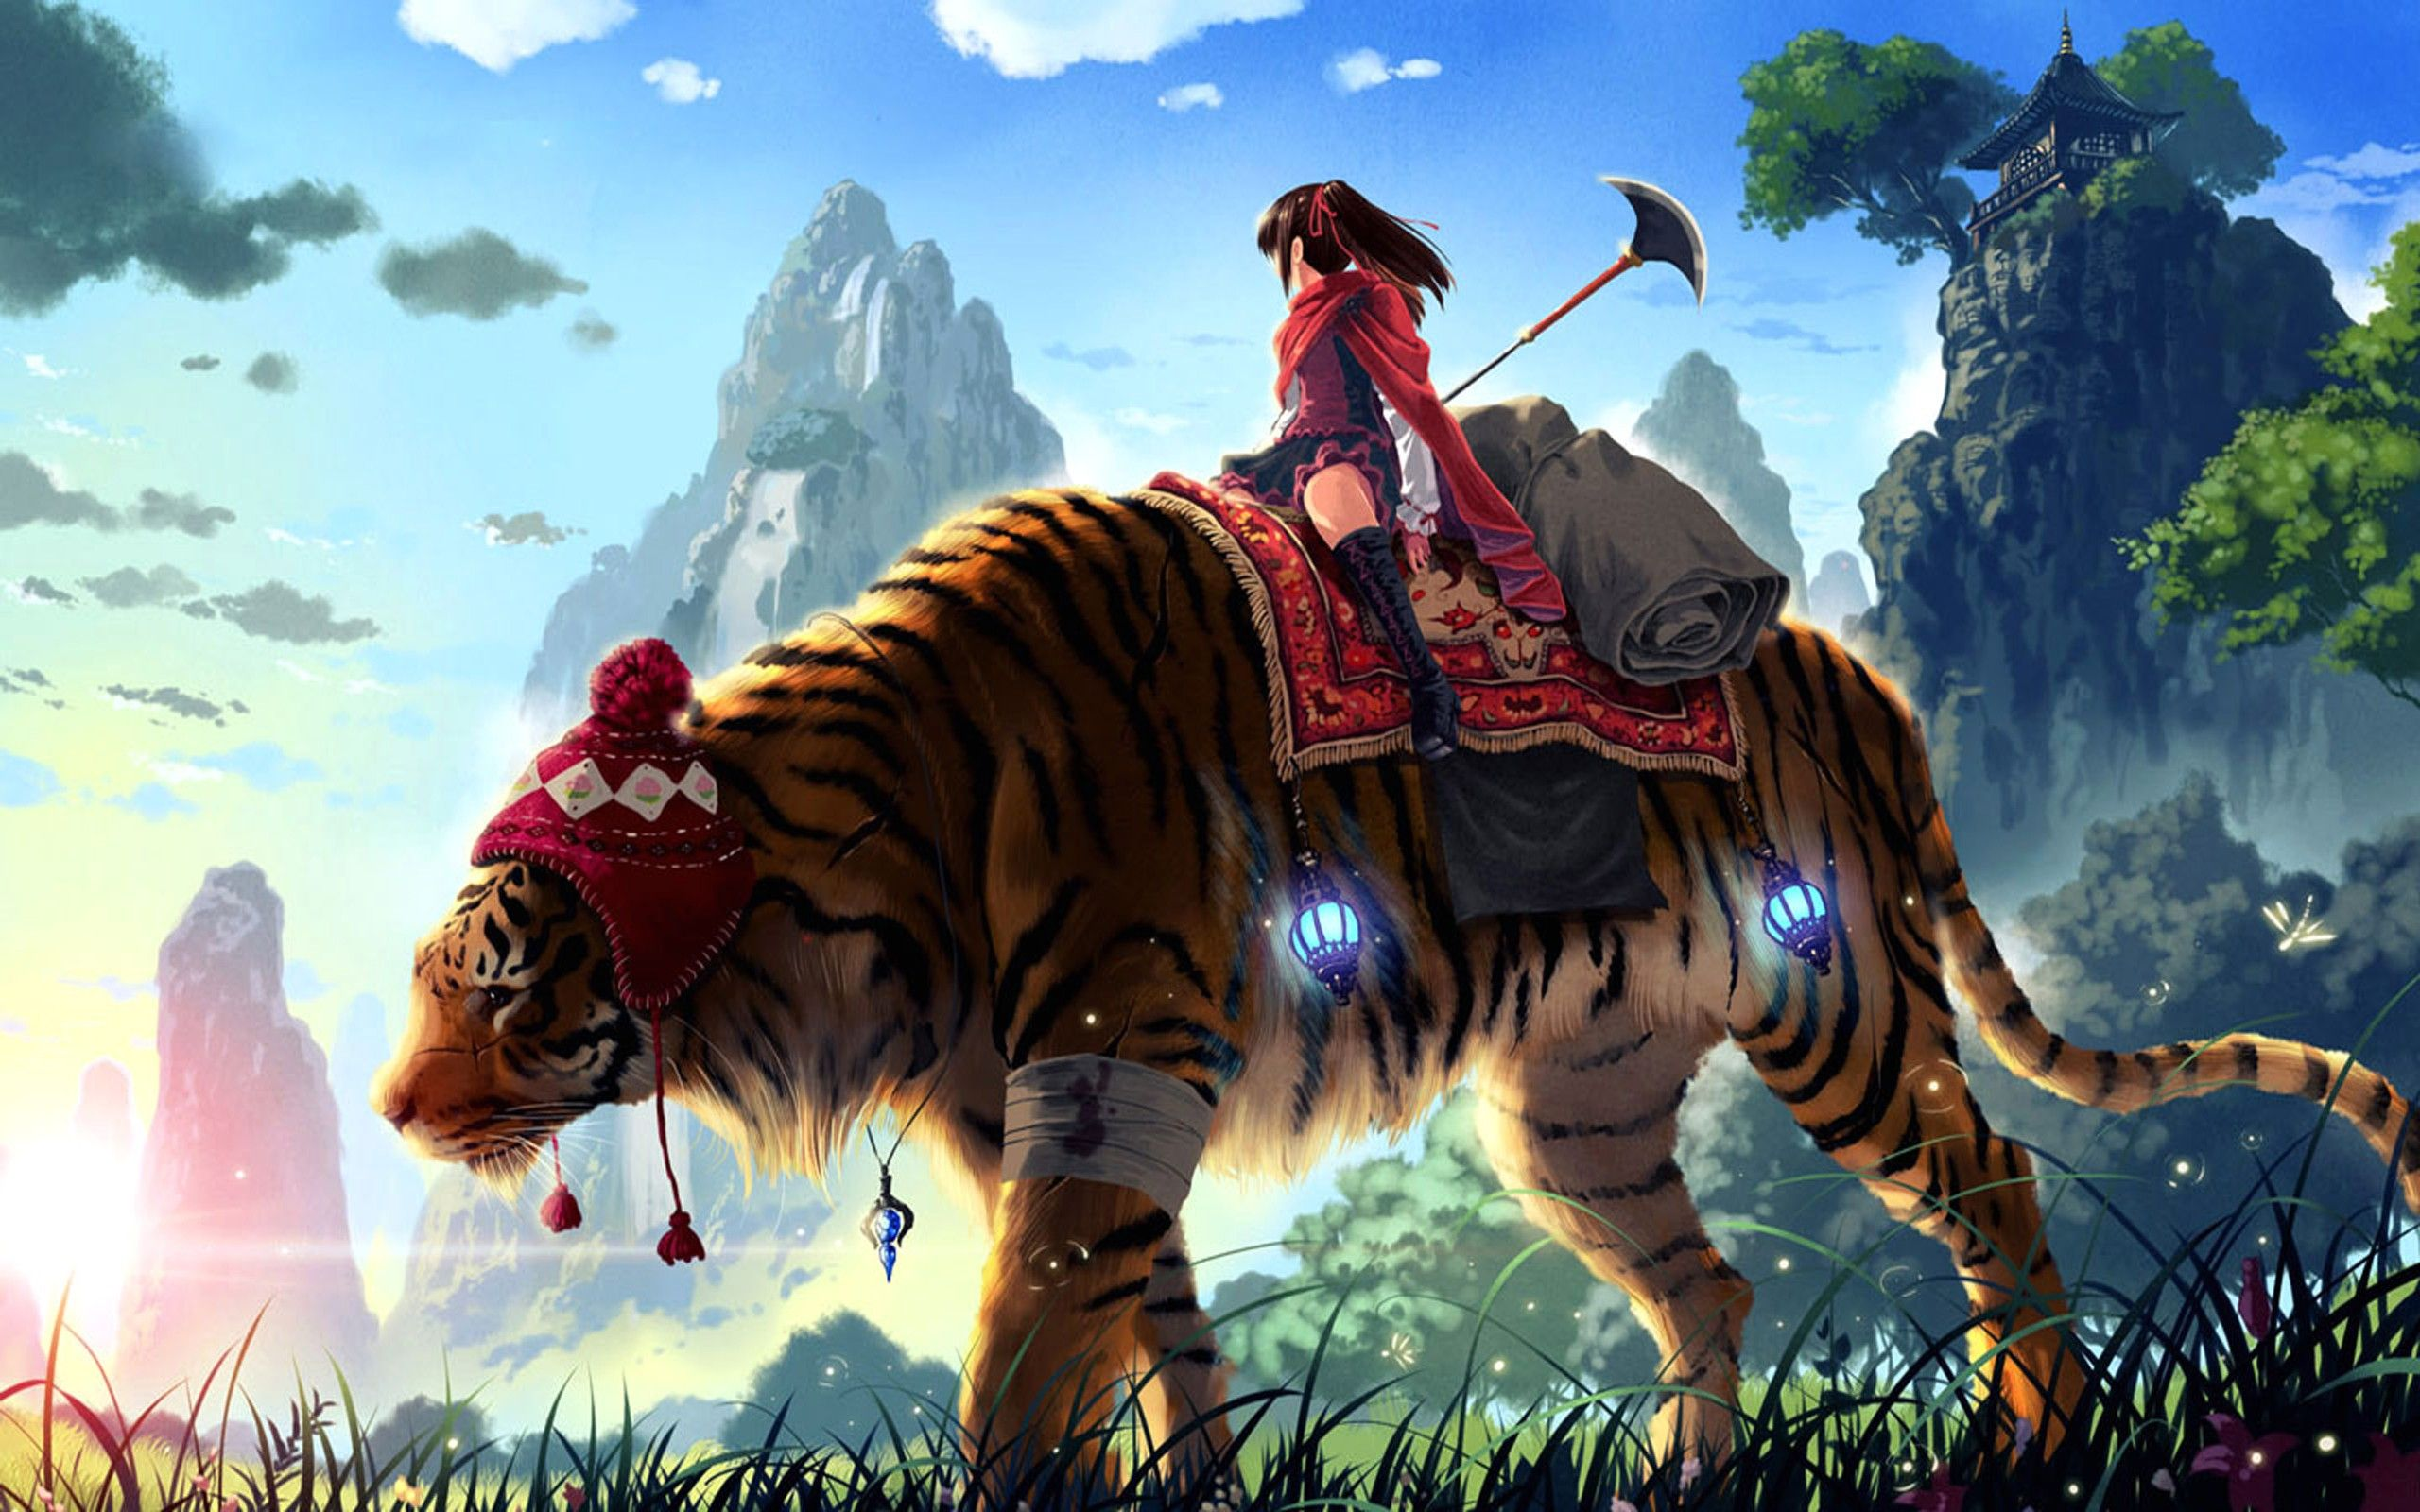 I'd feel pretty safe with a enormous tiger at my side too